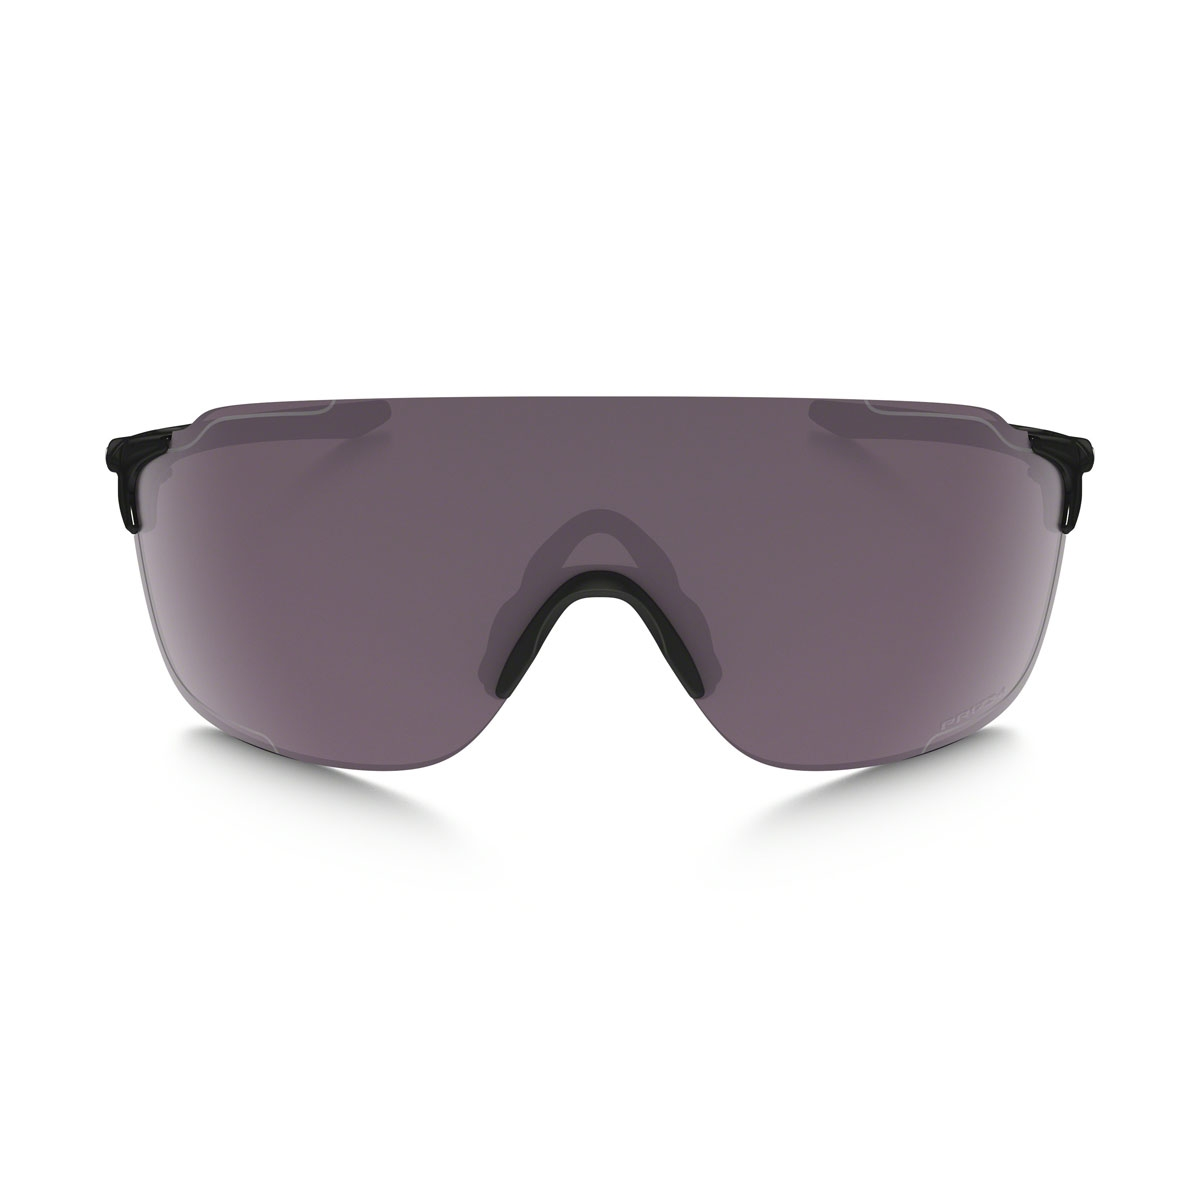 dd5d4c8df44 ... Image of Oakley EVZero Stride Prizm Daily Polarized Sunglasses -  Polished Black Prizm Daily Polarized